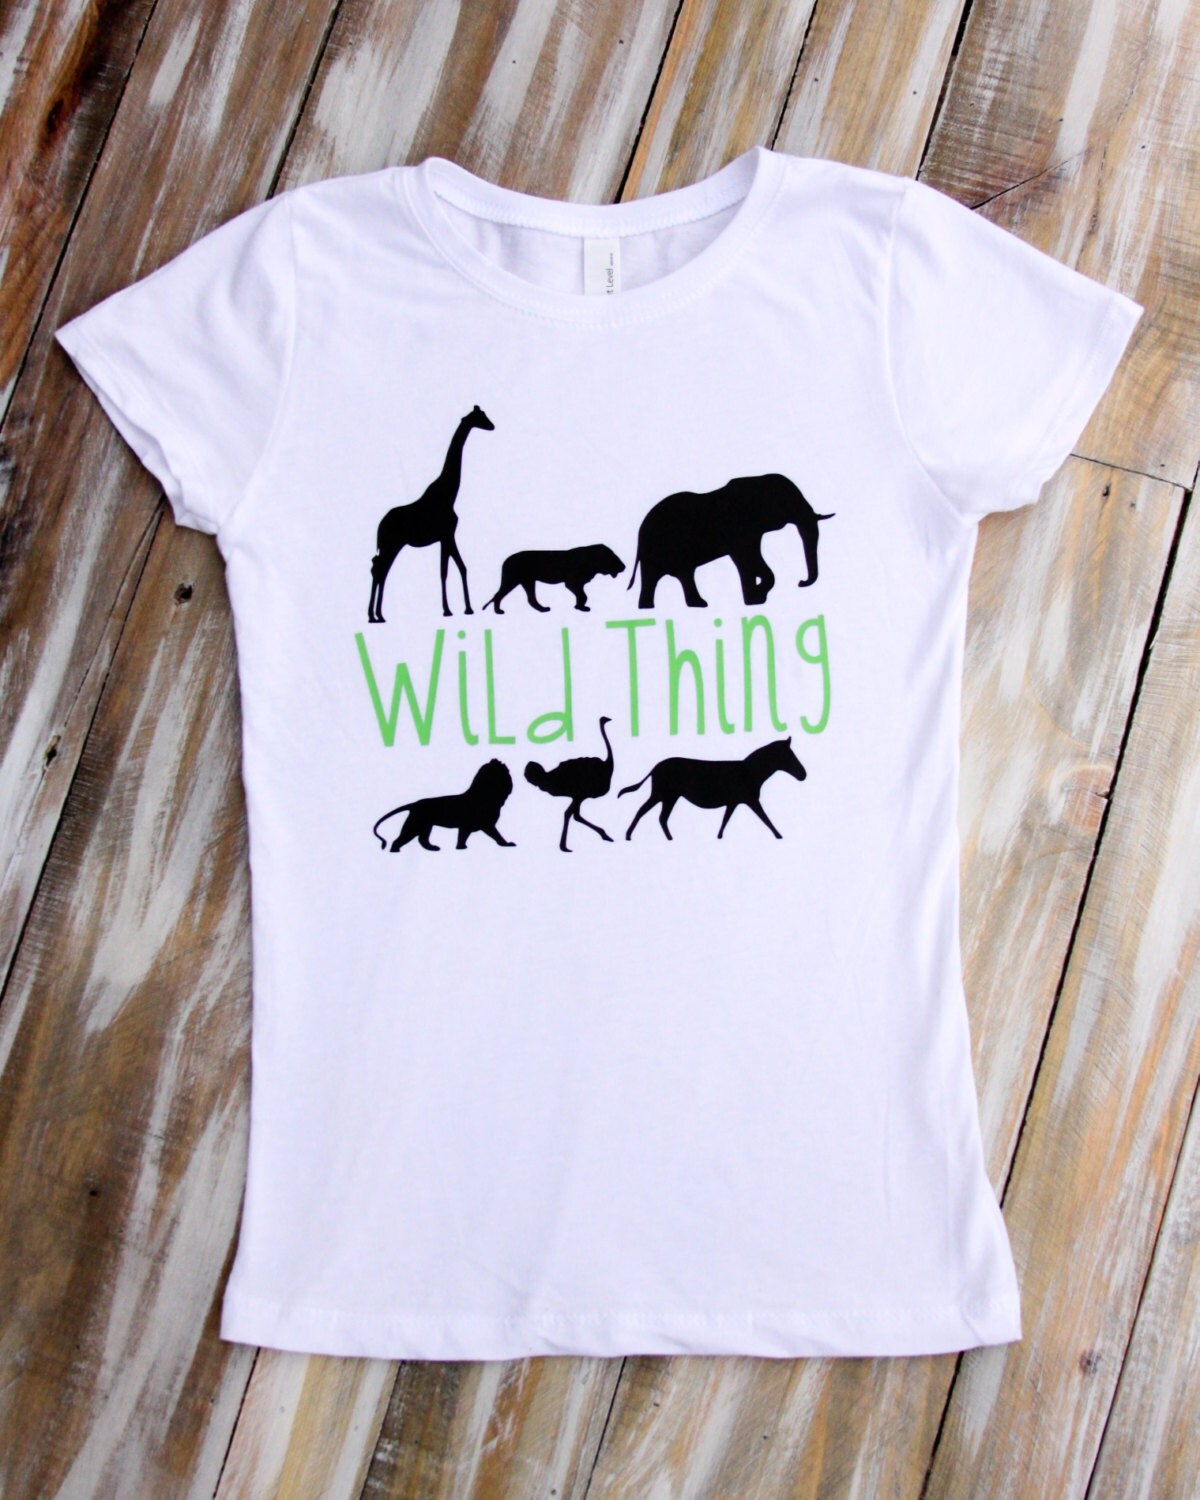 Wild Thing Zoo Animal Shirts And Onesies For Boys Amp Girls